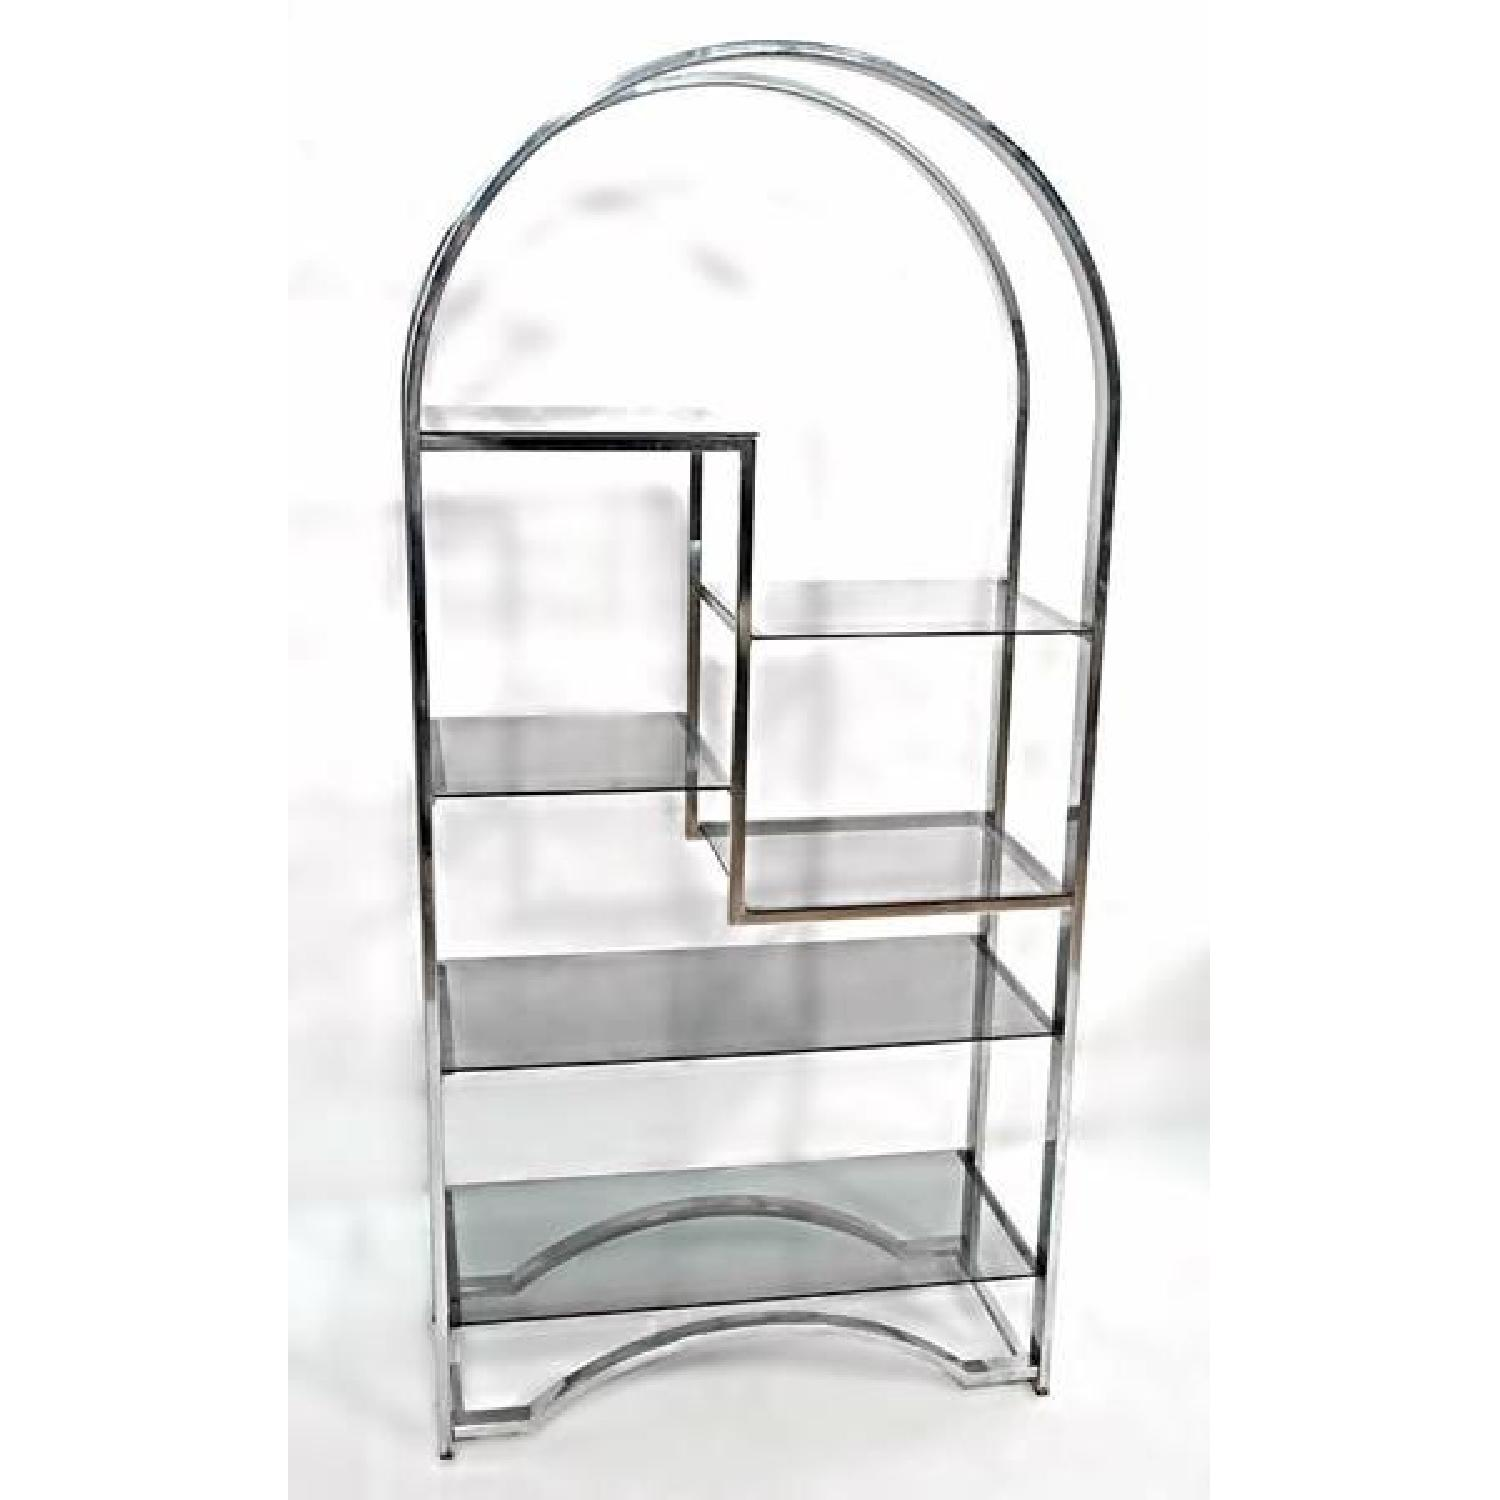 Milo Baughman Chrome Arched Top Etagere Smoked Glass Shelves - image-8